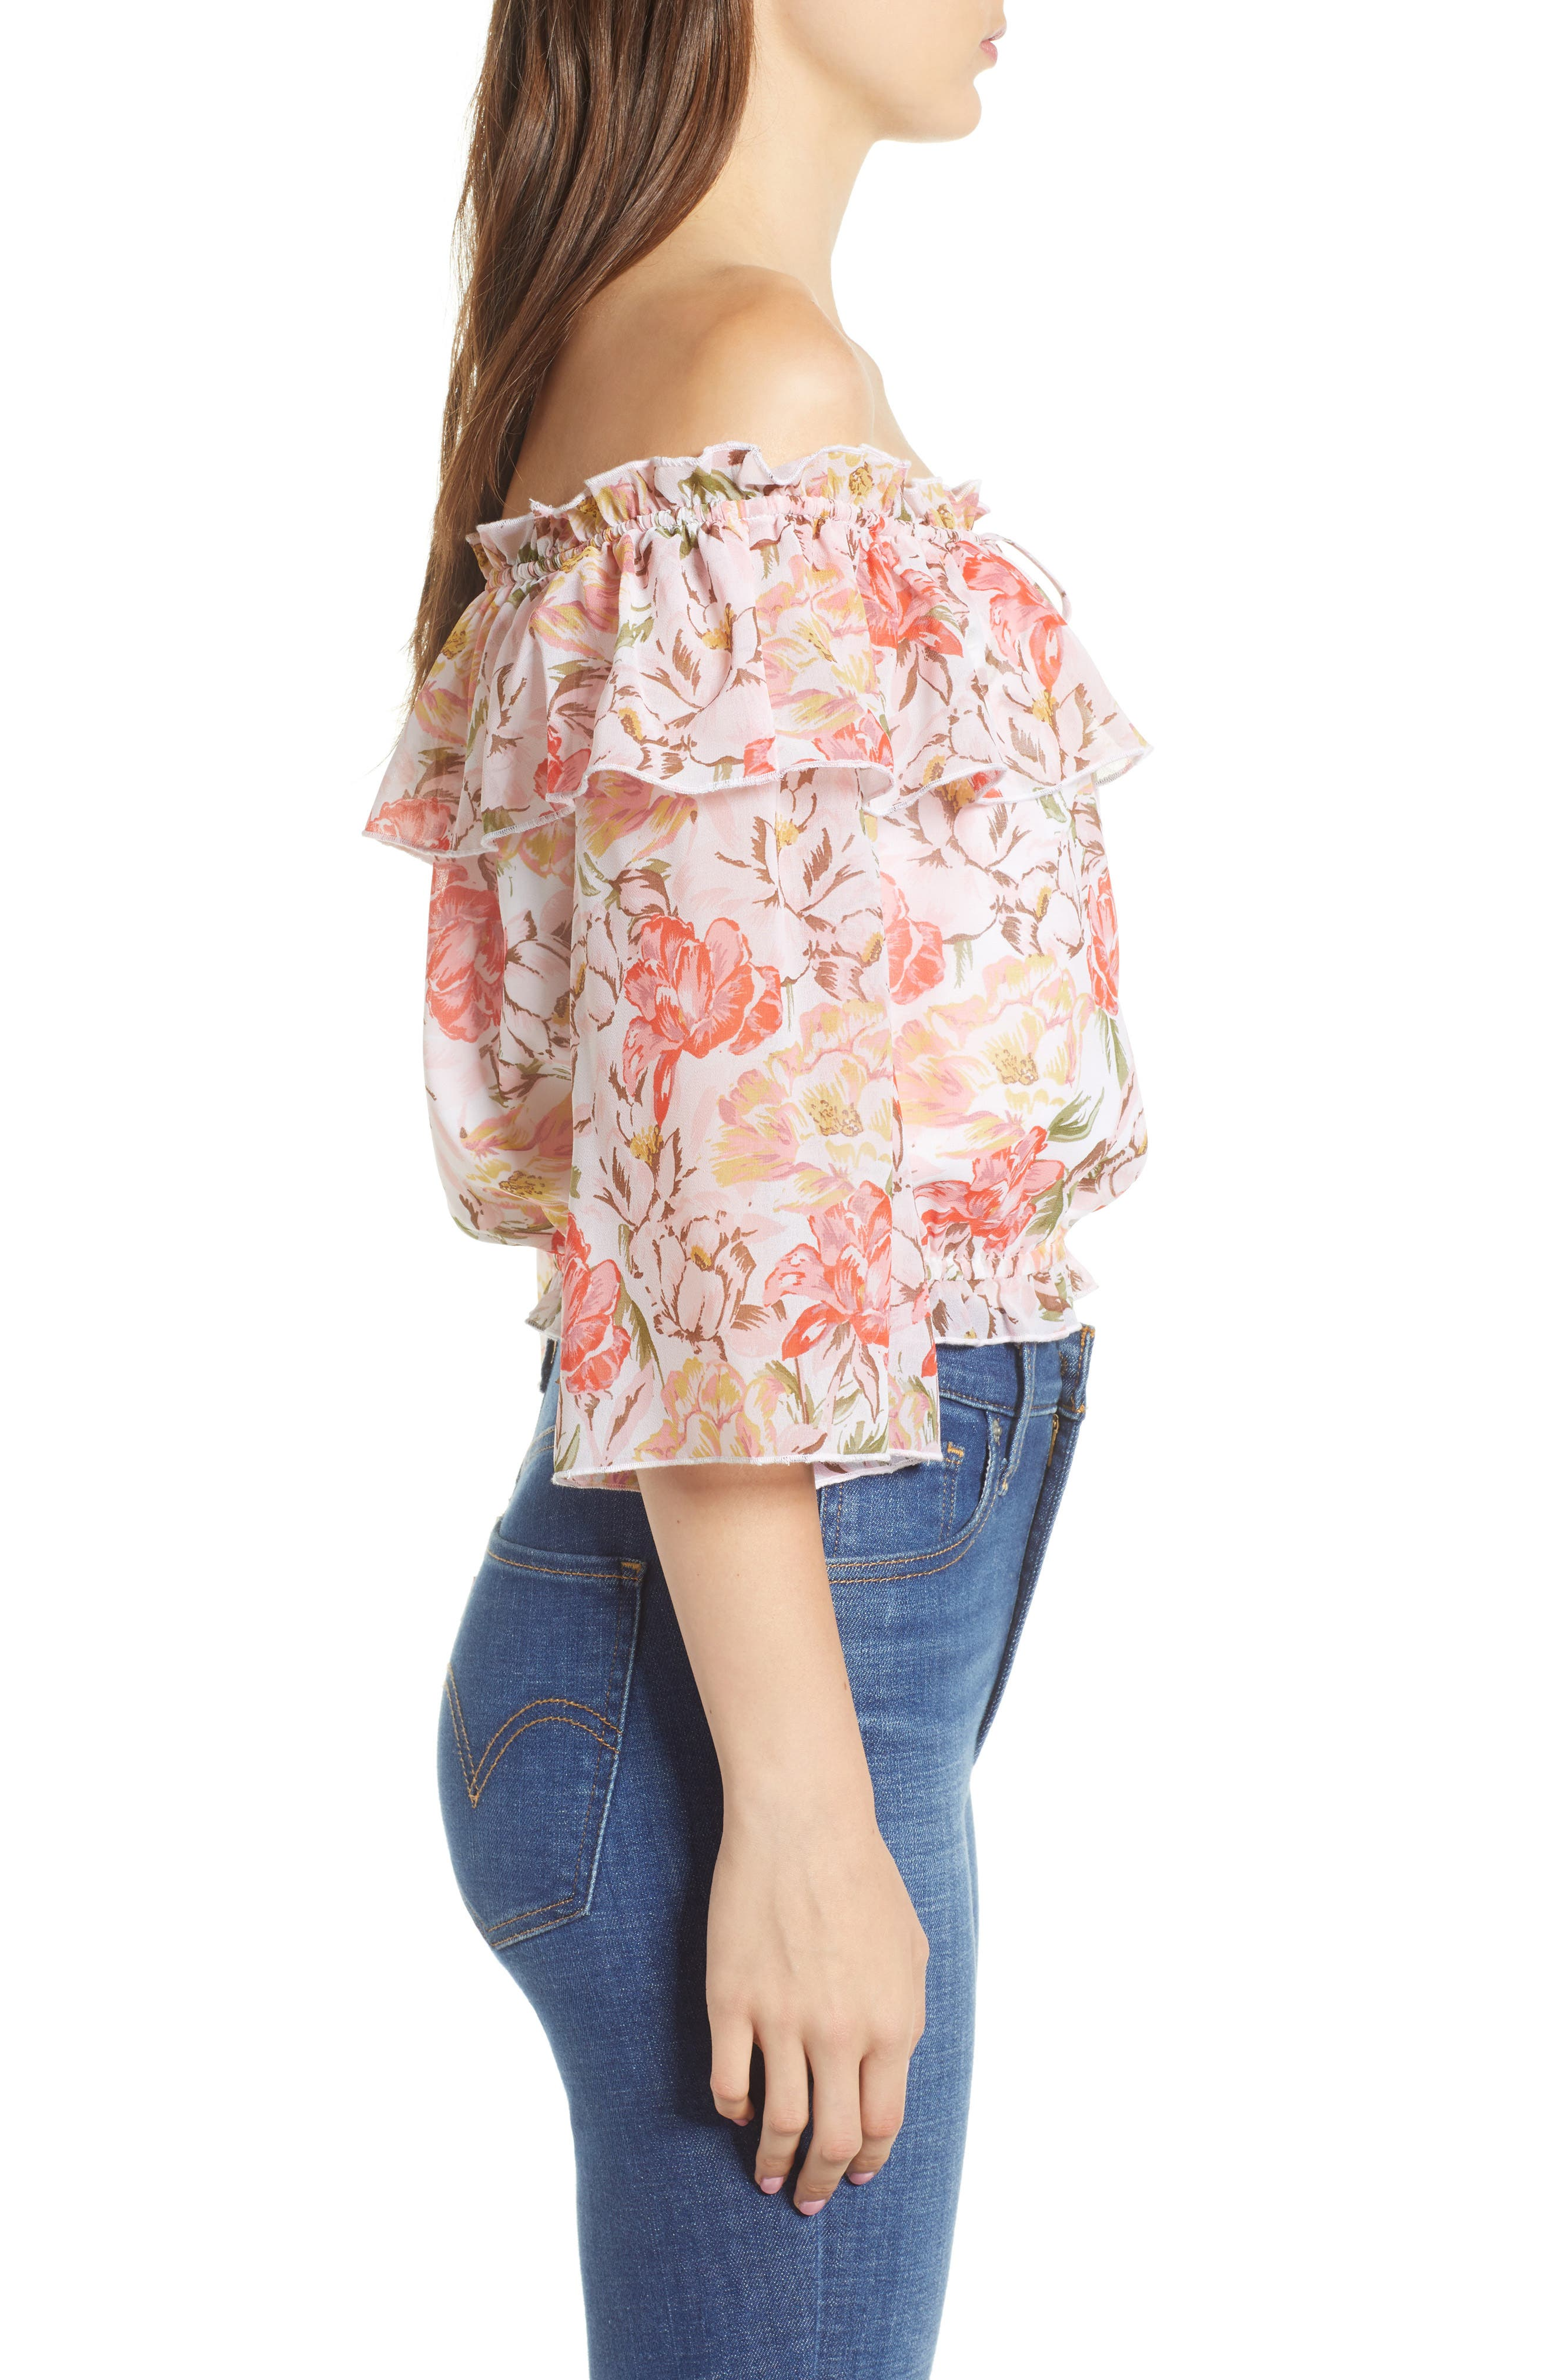 Cosenza Off the Shoulder Crop Top,                             Alternate thumbnail 3, color,                             Ivory Floral